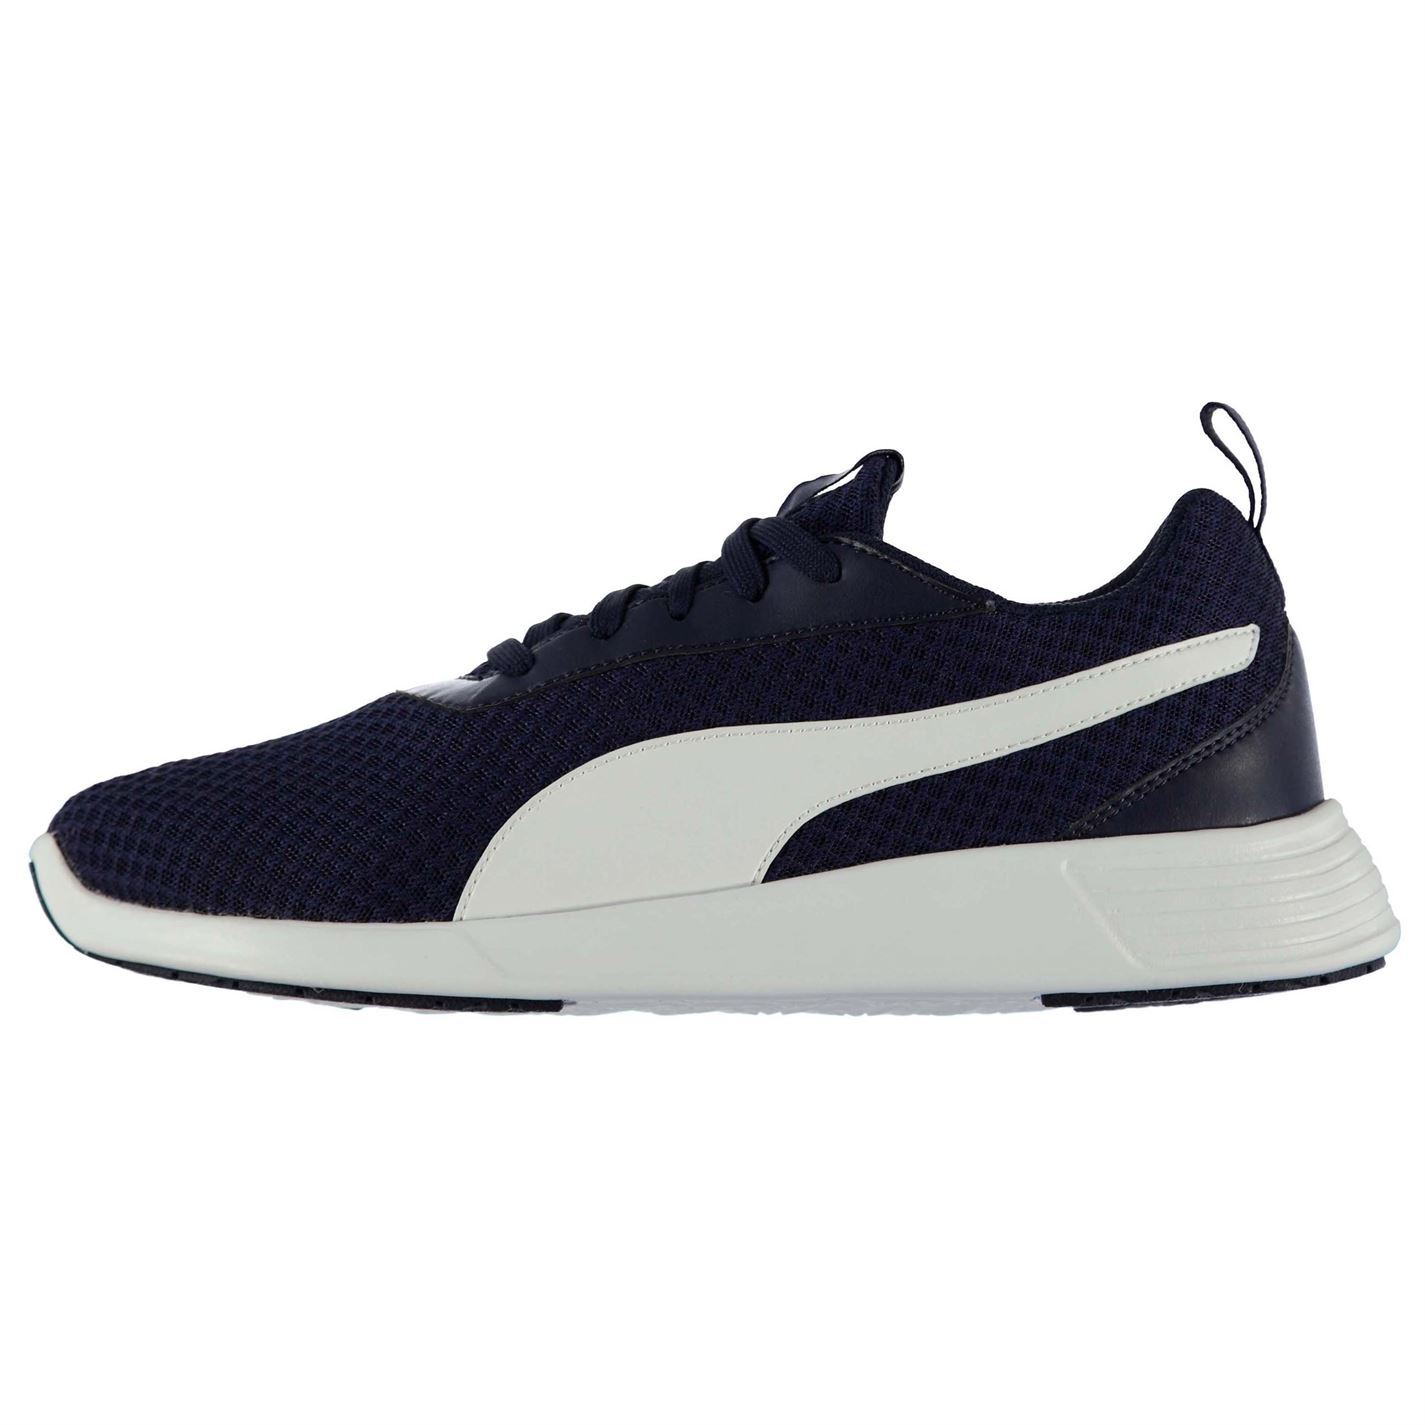 release date 834f6 e829d czech nike free run 3.0 womens 2017 5c7c8 5ebb5  coupon puma st evo s  trainers mens sports navy white sports mens shoes sneakers footwear 0a5521